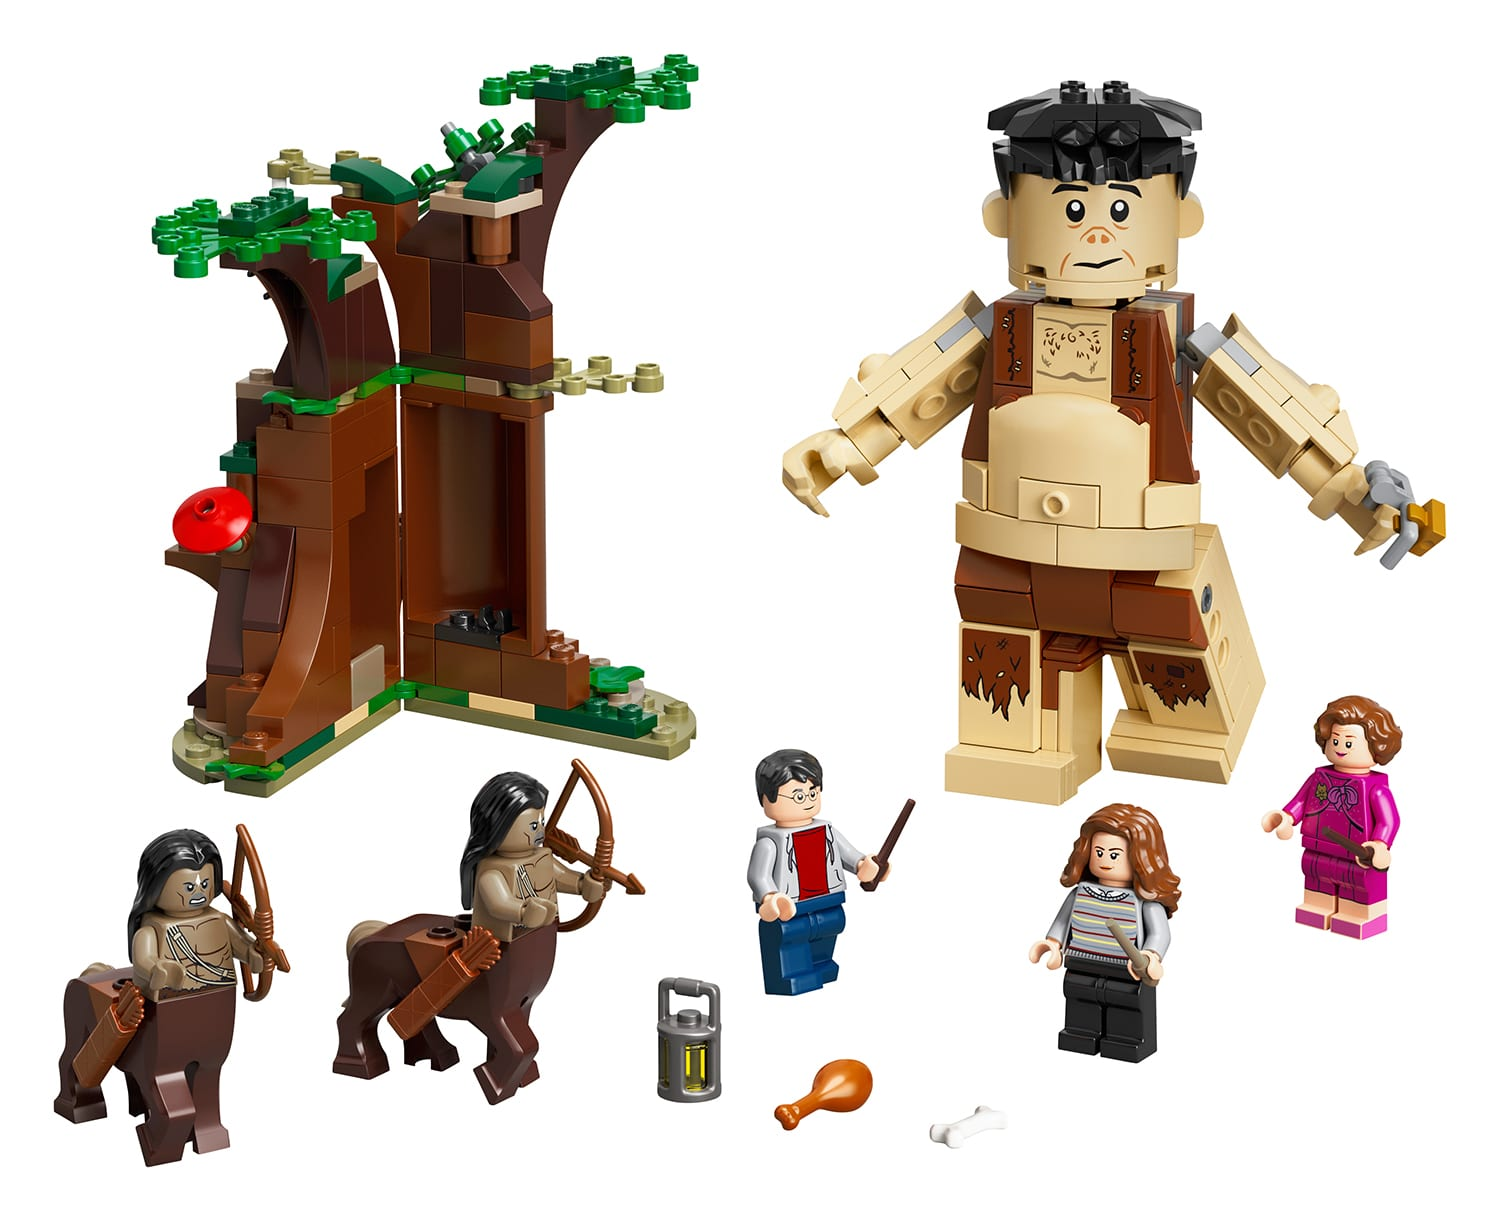 LEGO expands its Harry Potter collection with new Wizarding World playsets 13